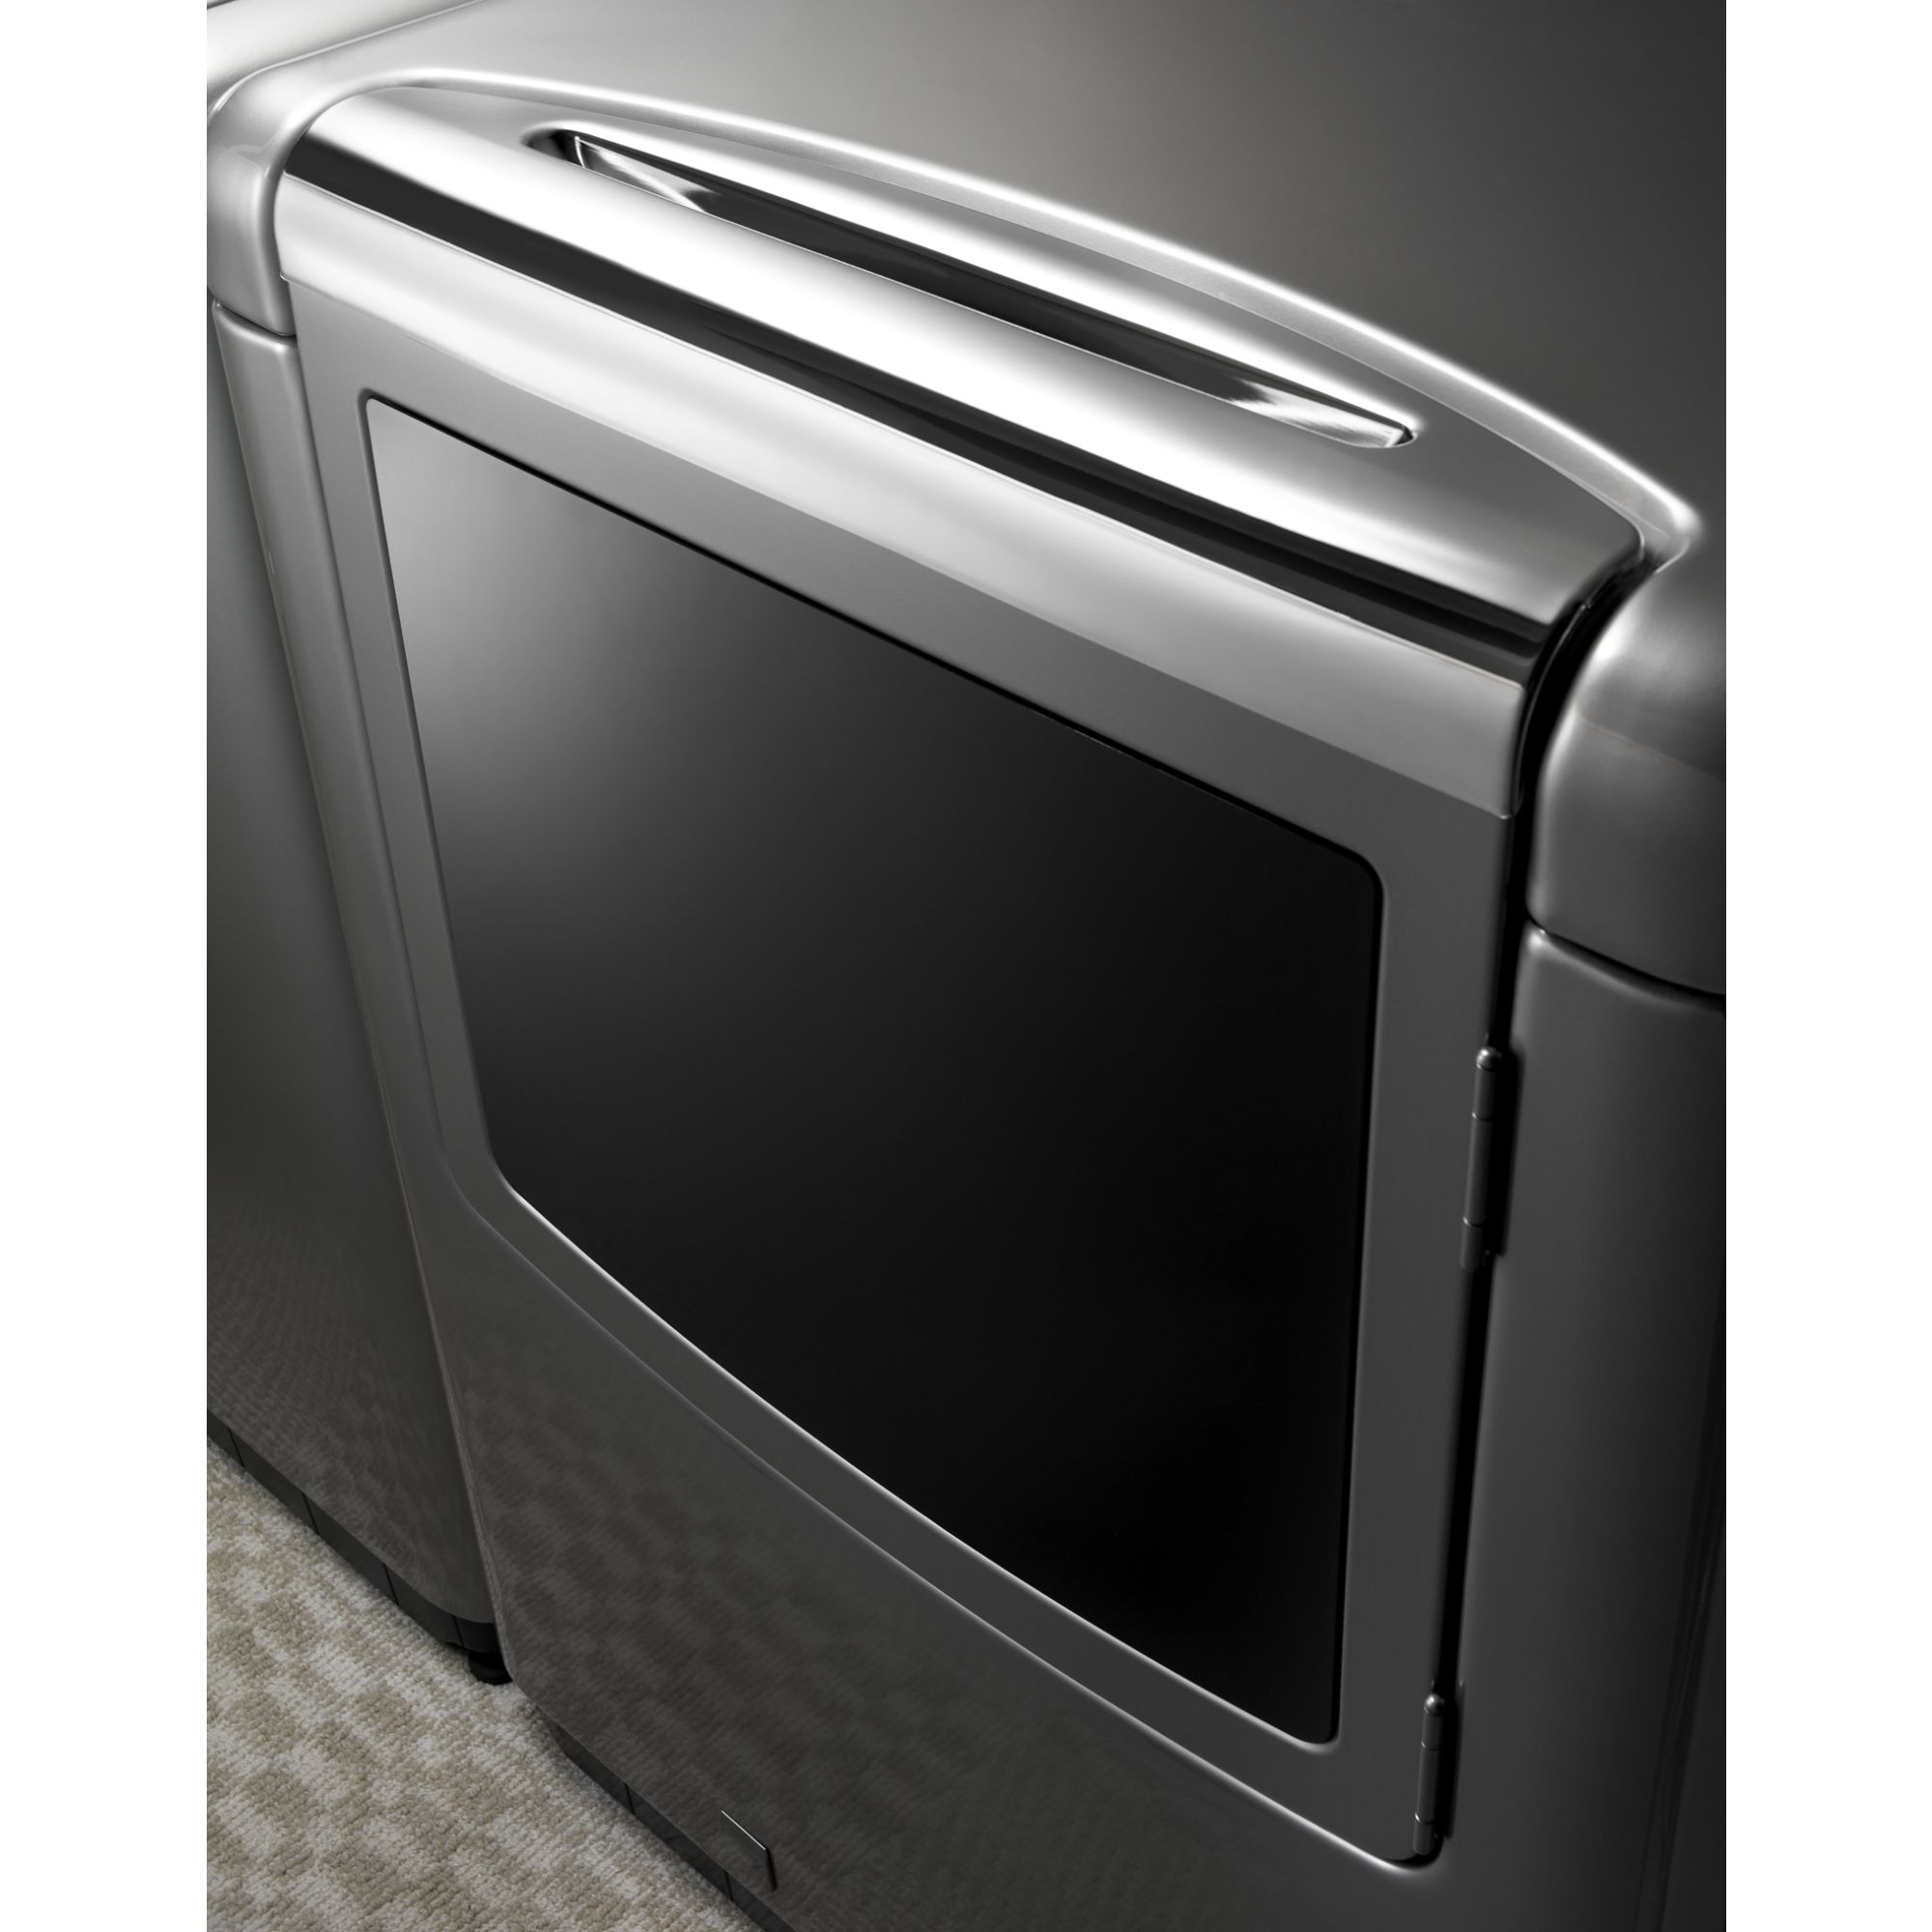 Whirlpool 7.6 cu. ft. Cabrio® Platinum Steam Gas Dryer w/ Static Reduce - Metallic